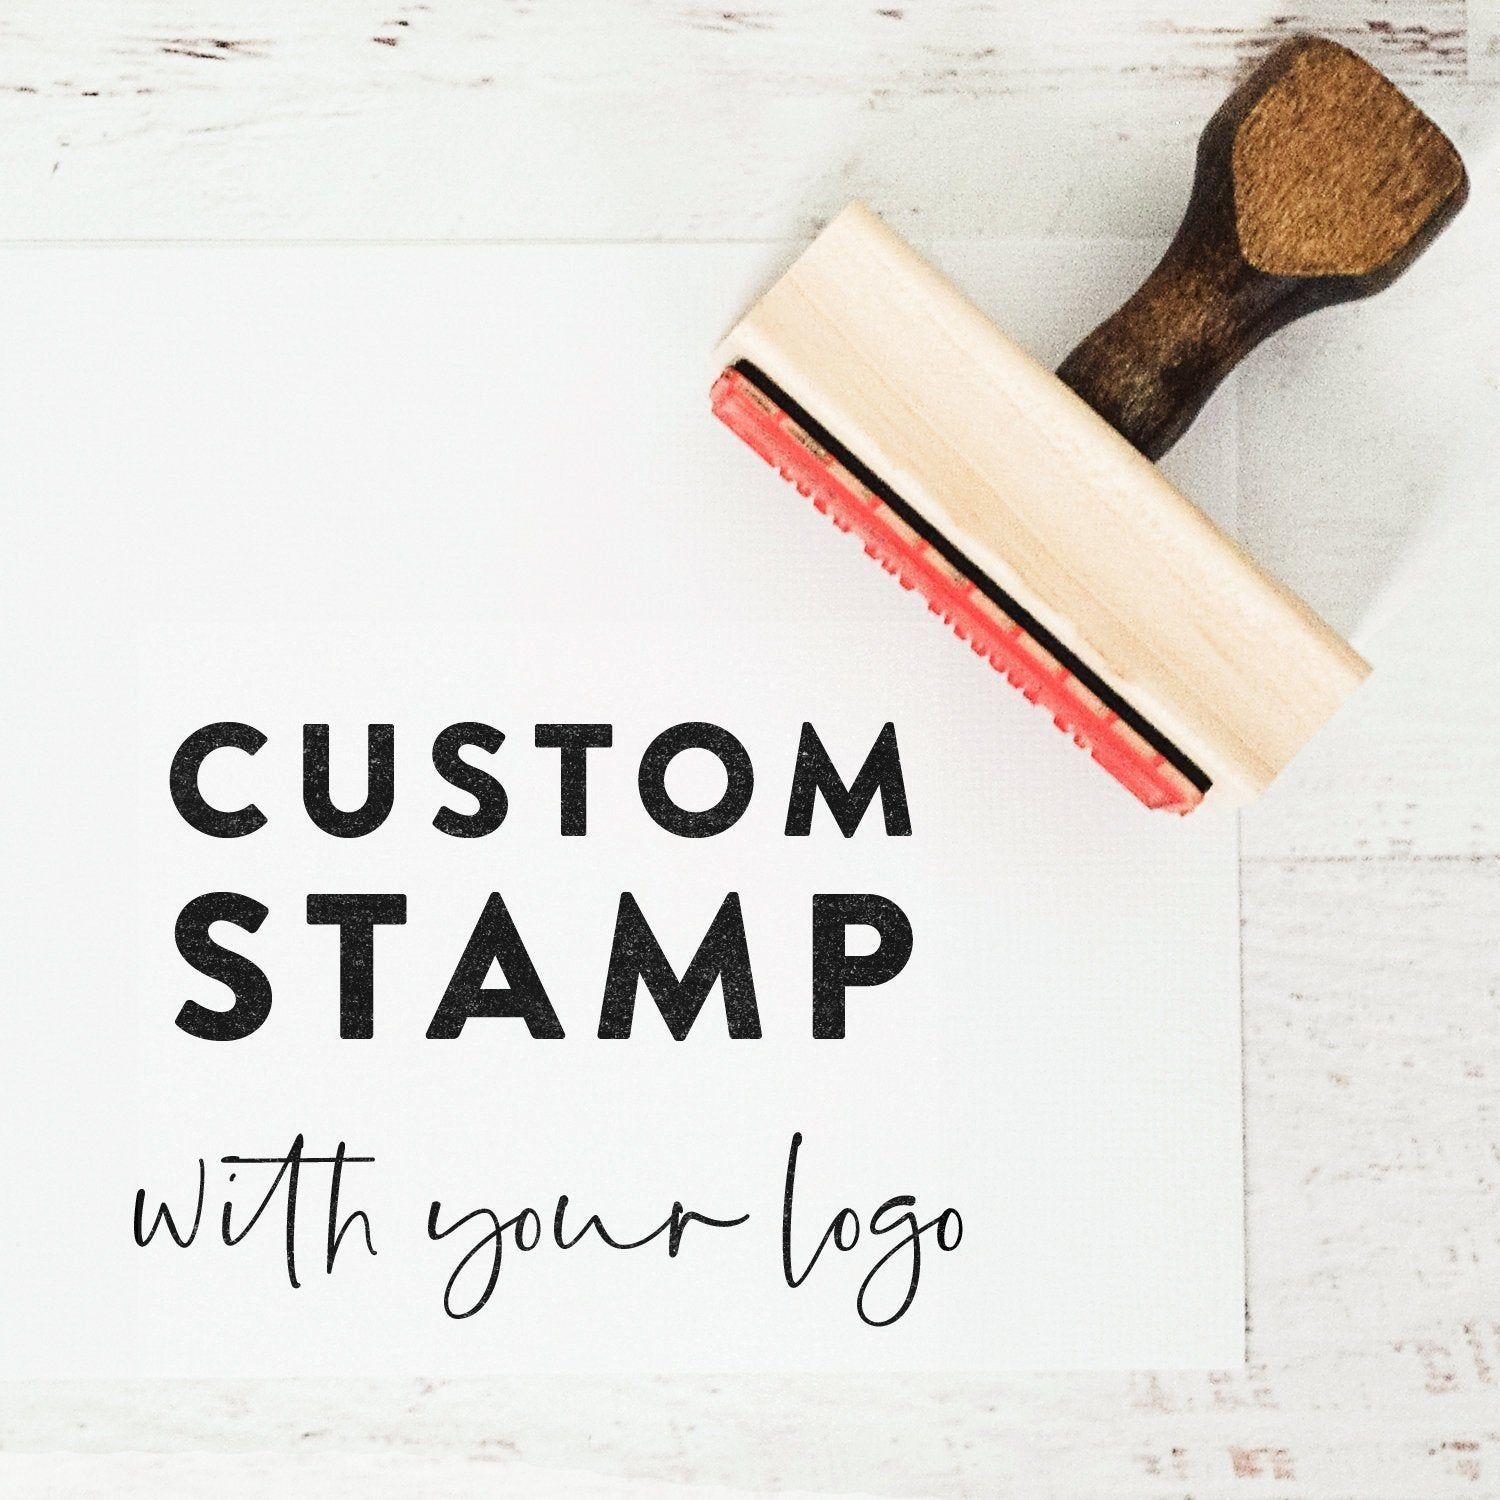 Custom Logo Stamp With Your Image, Custom Stamp for Small